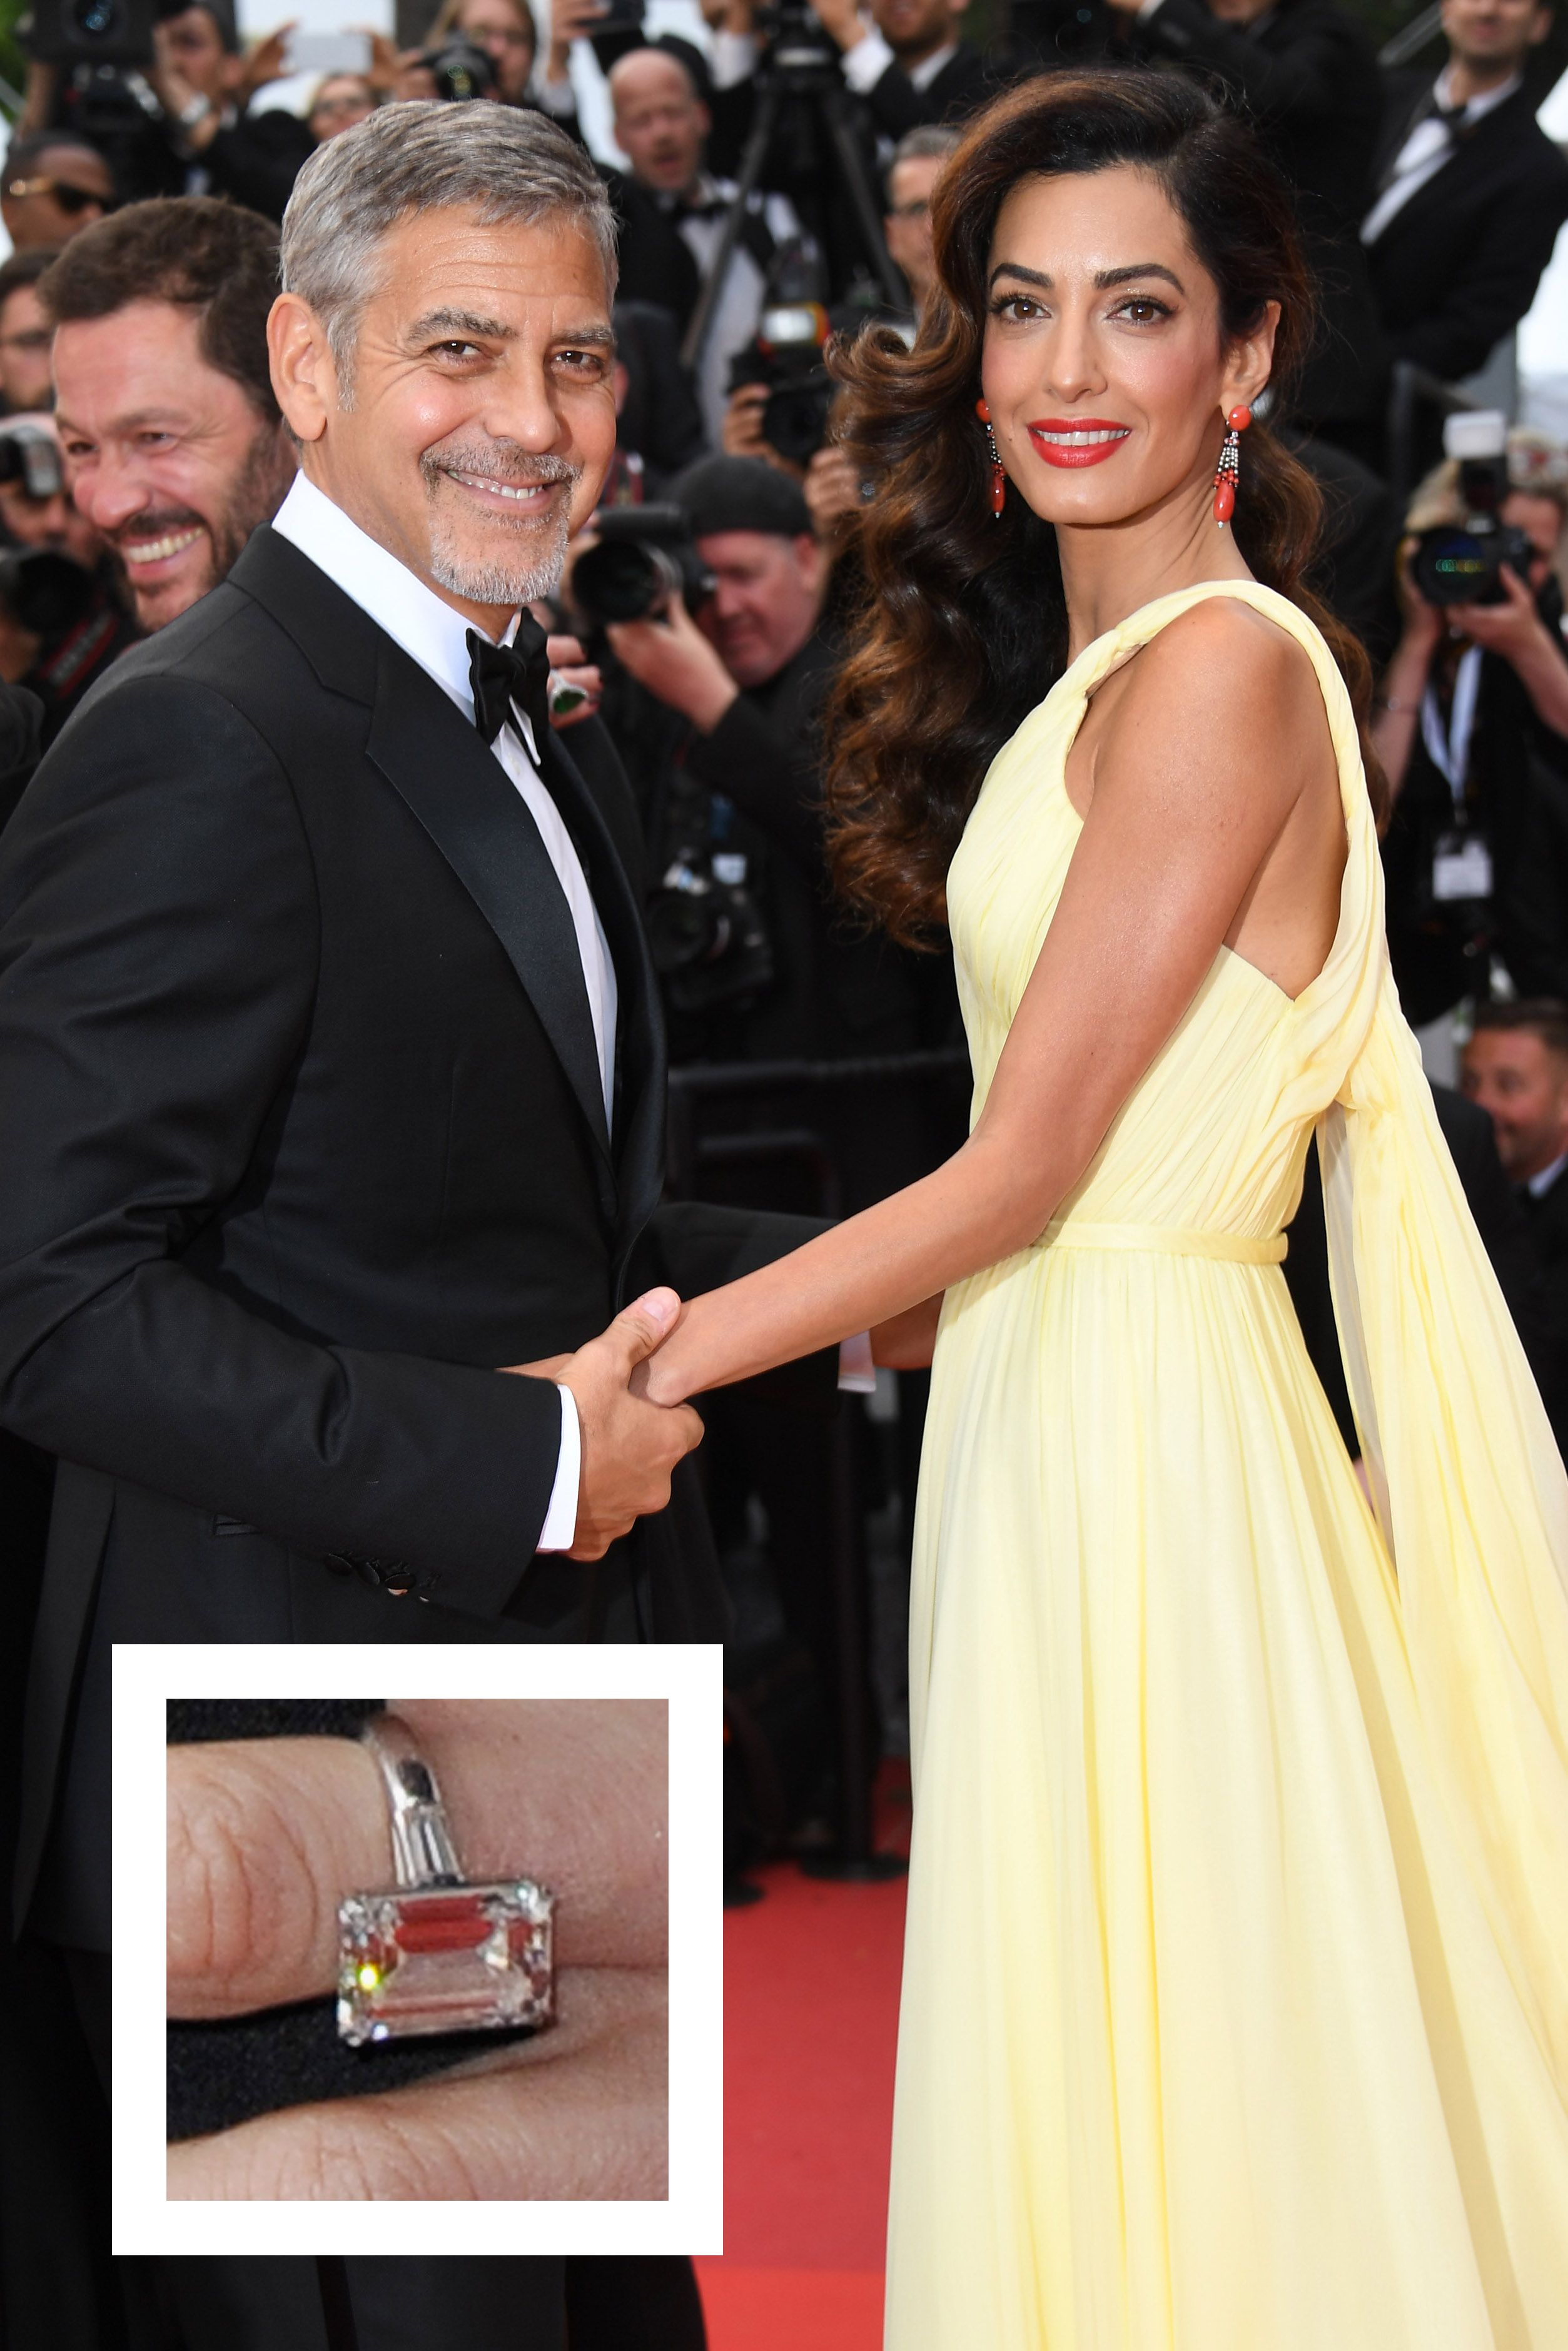 40+ Best Celebrity Engagement Rings - Biggest, Most